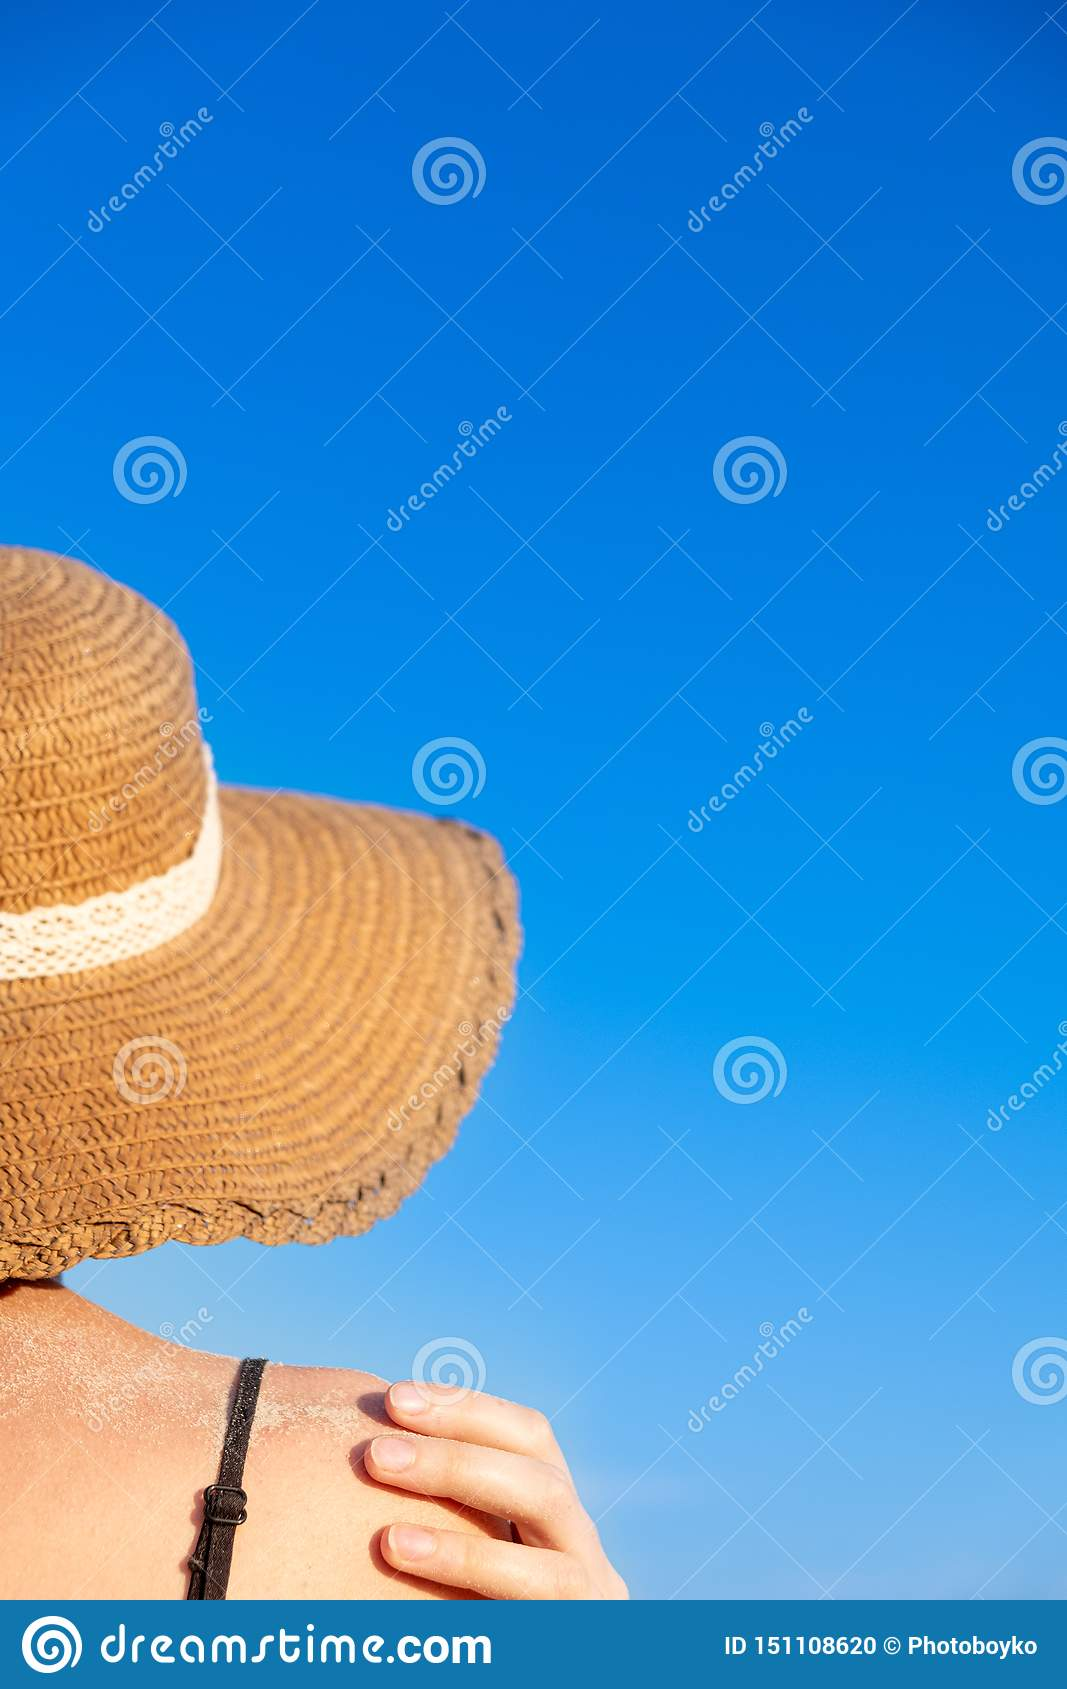 Summer holidays mood: female in beach hat, covered in sand in bright blue background.